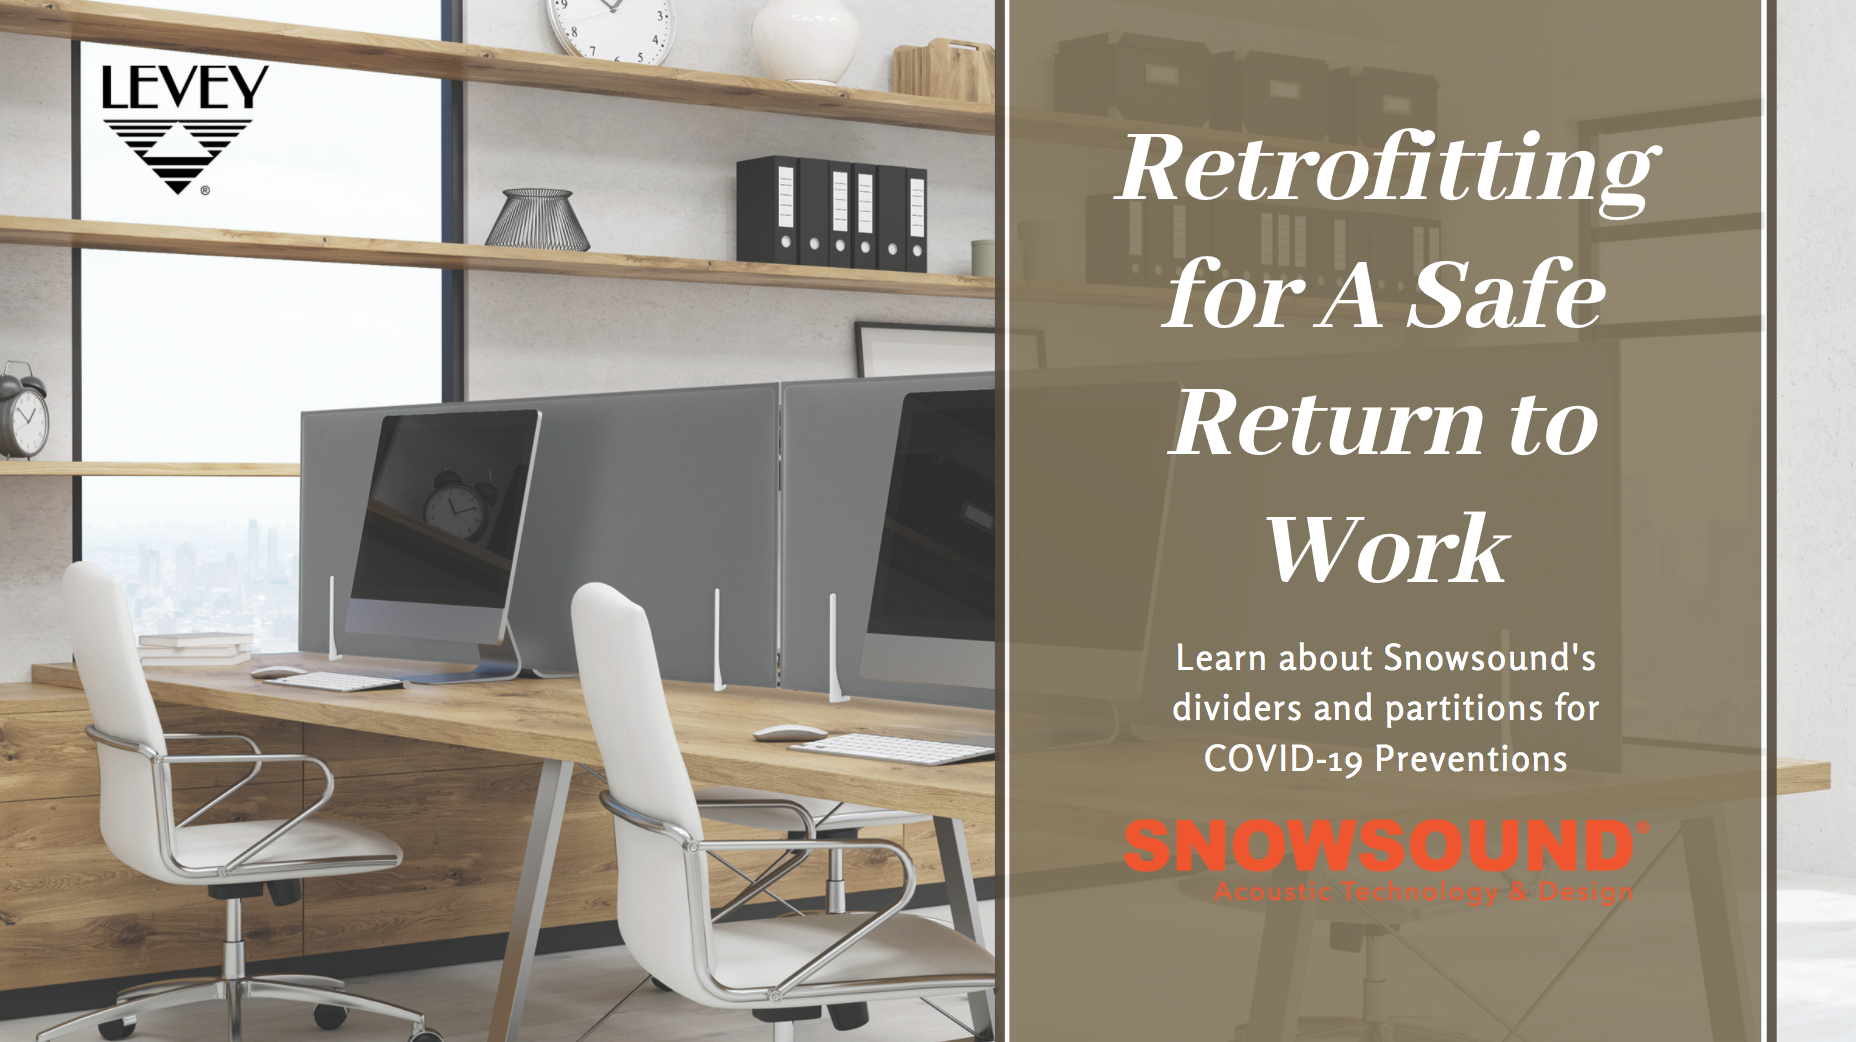 How to Retrofit Your Office for a Return to Work